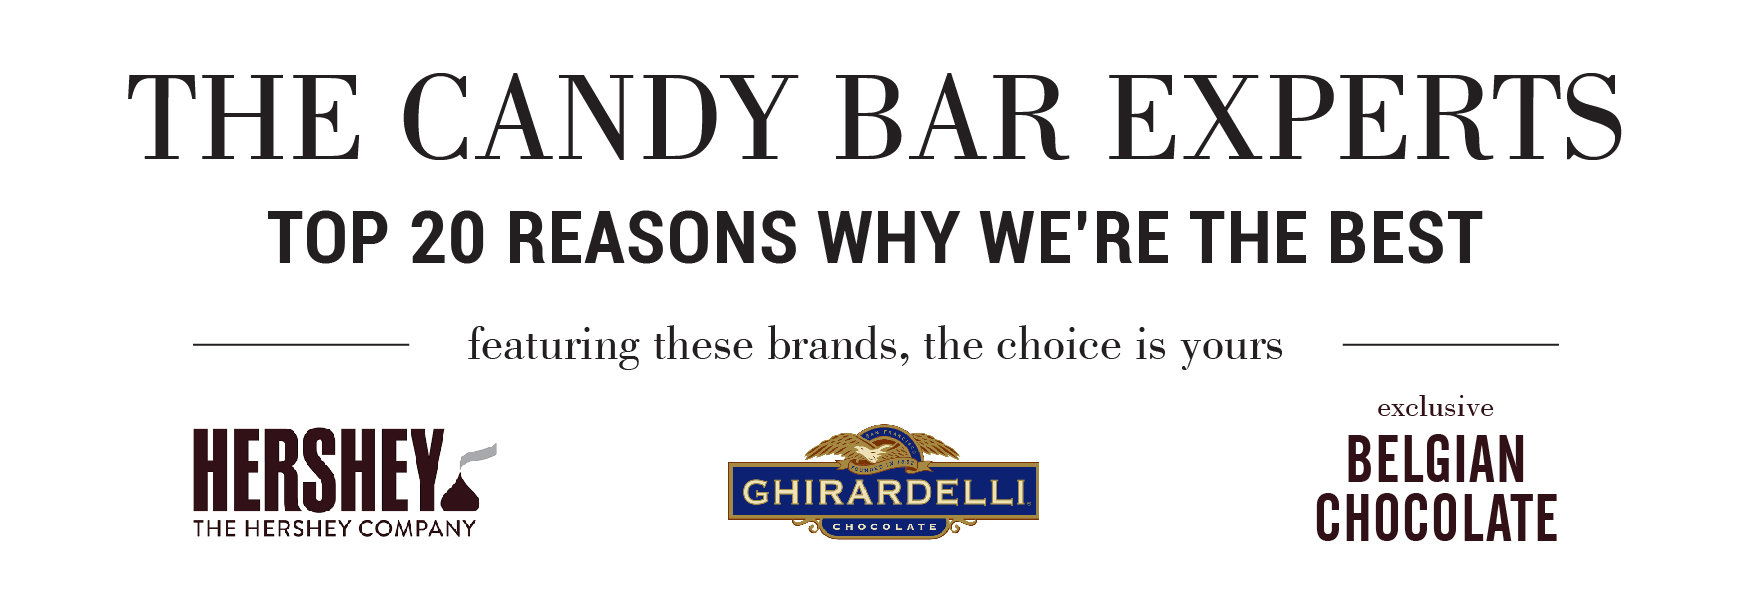 candy bar experts hershey ghirardelli belgian